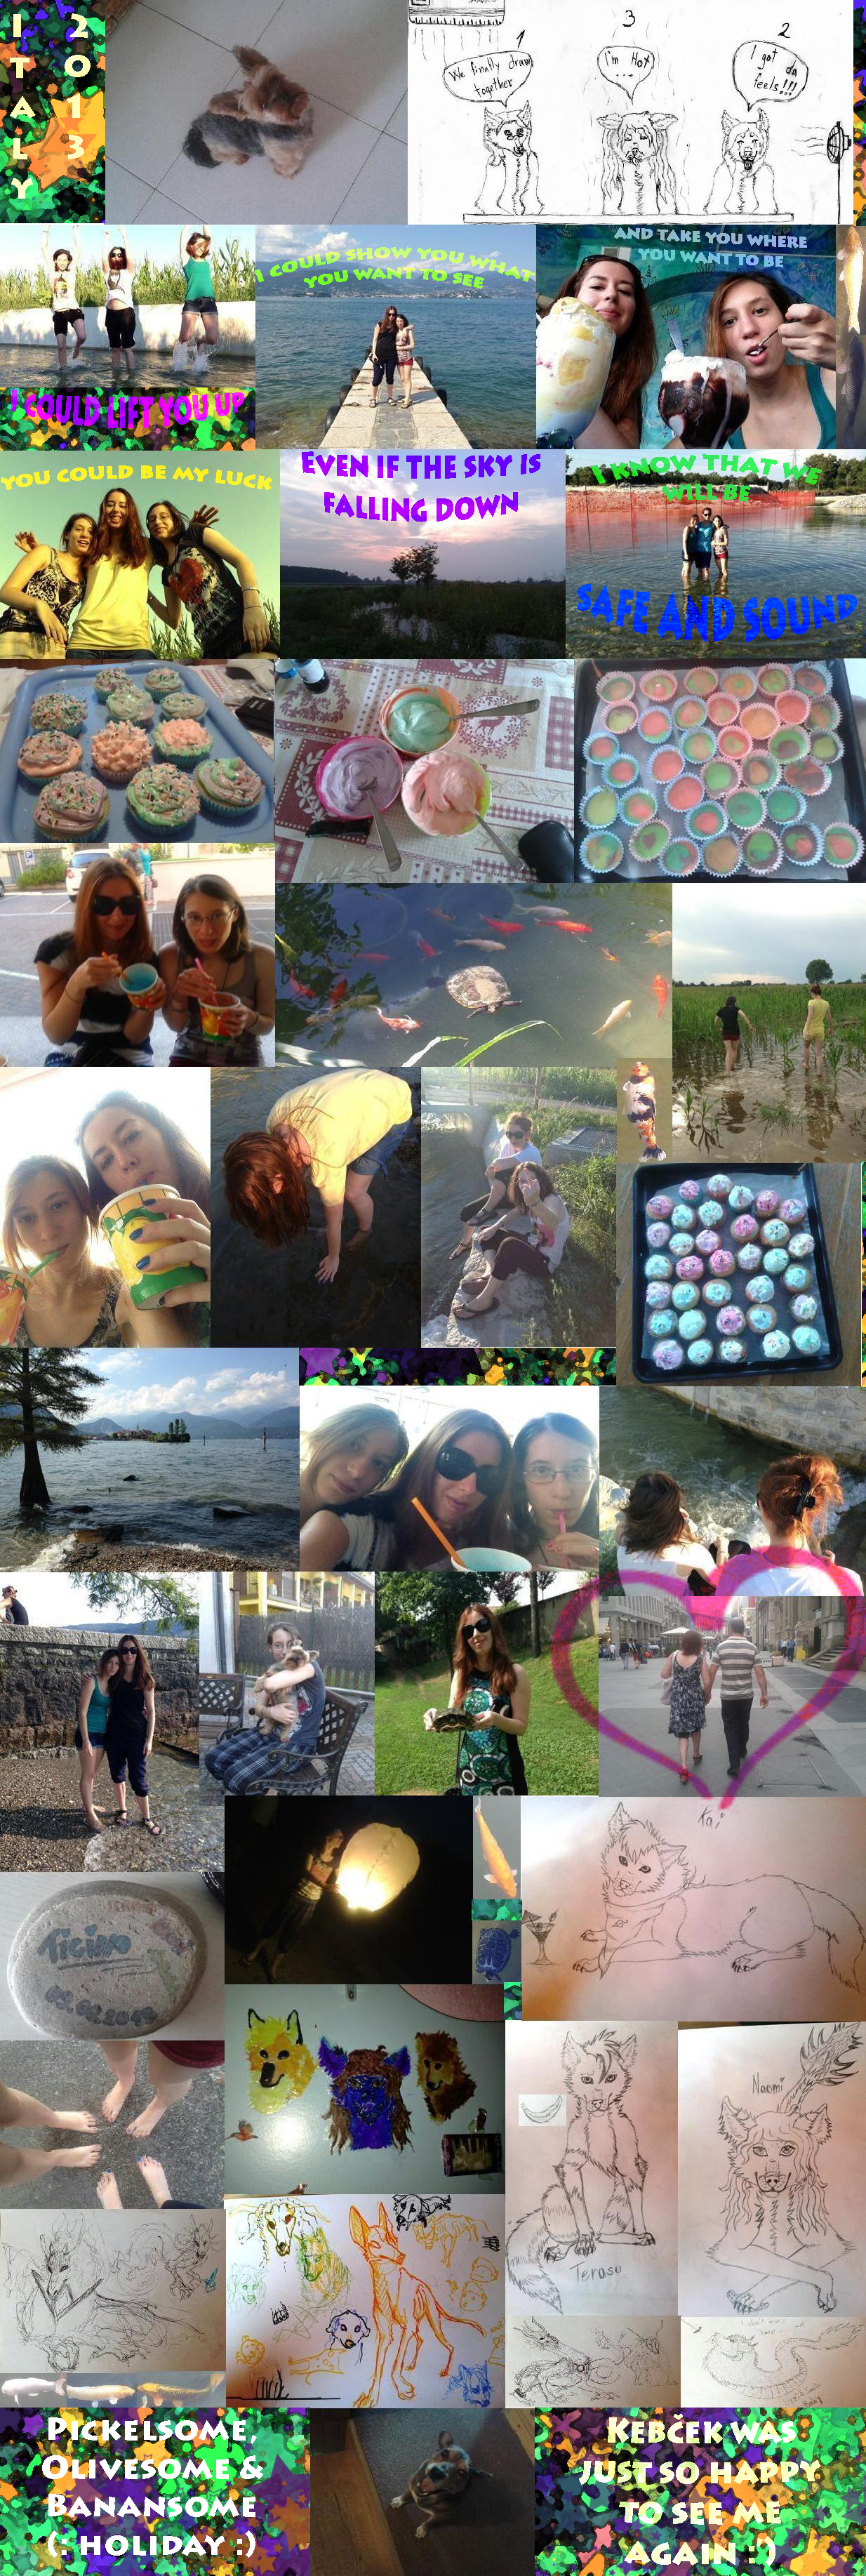 Italy holiday (: by WoLfgIrLyS